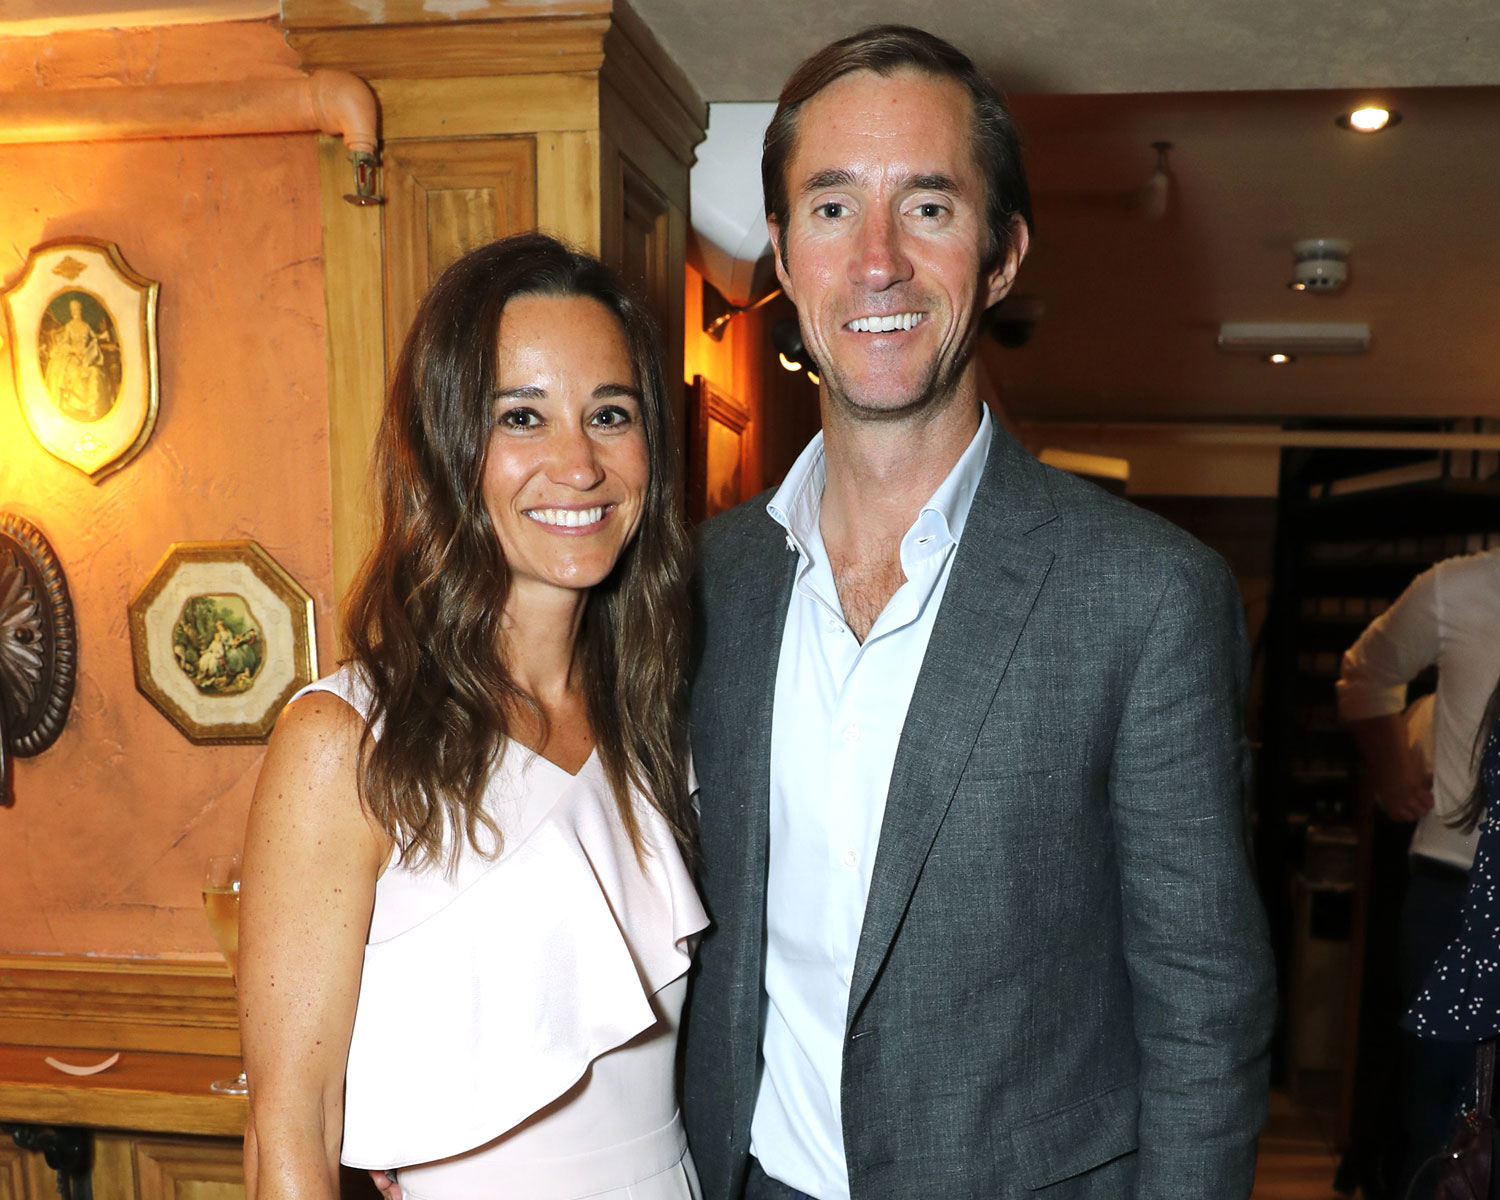 Pippa Middleton, James Matthews First Married Couple ... - photo#14